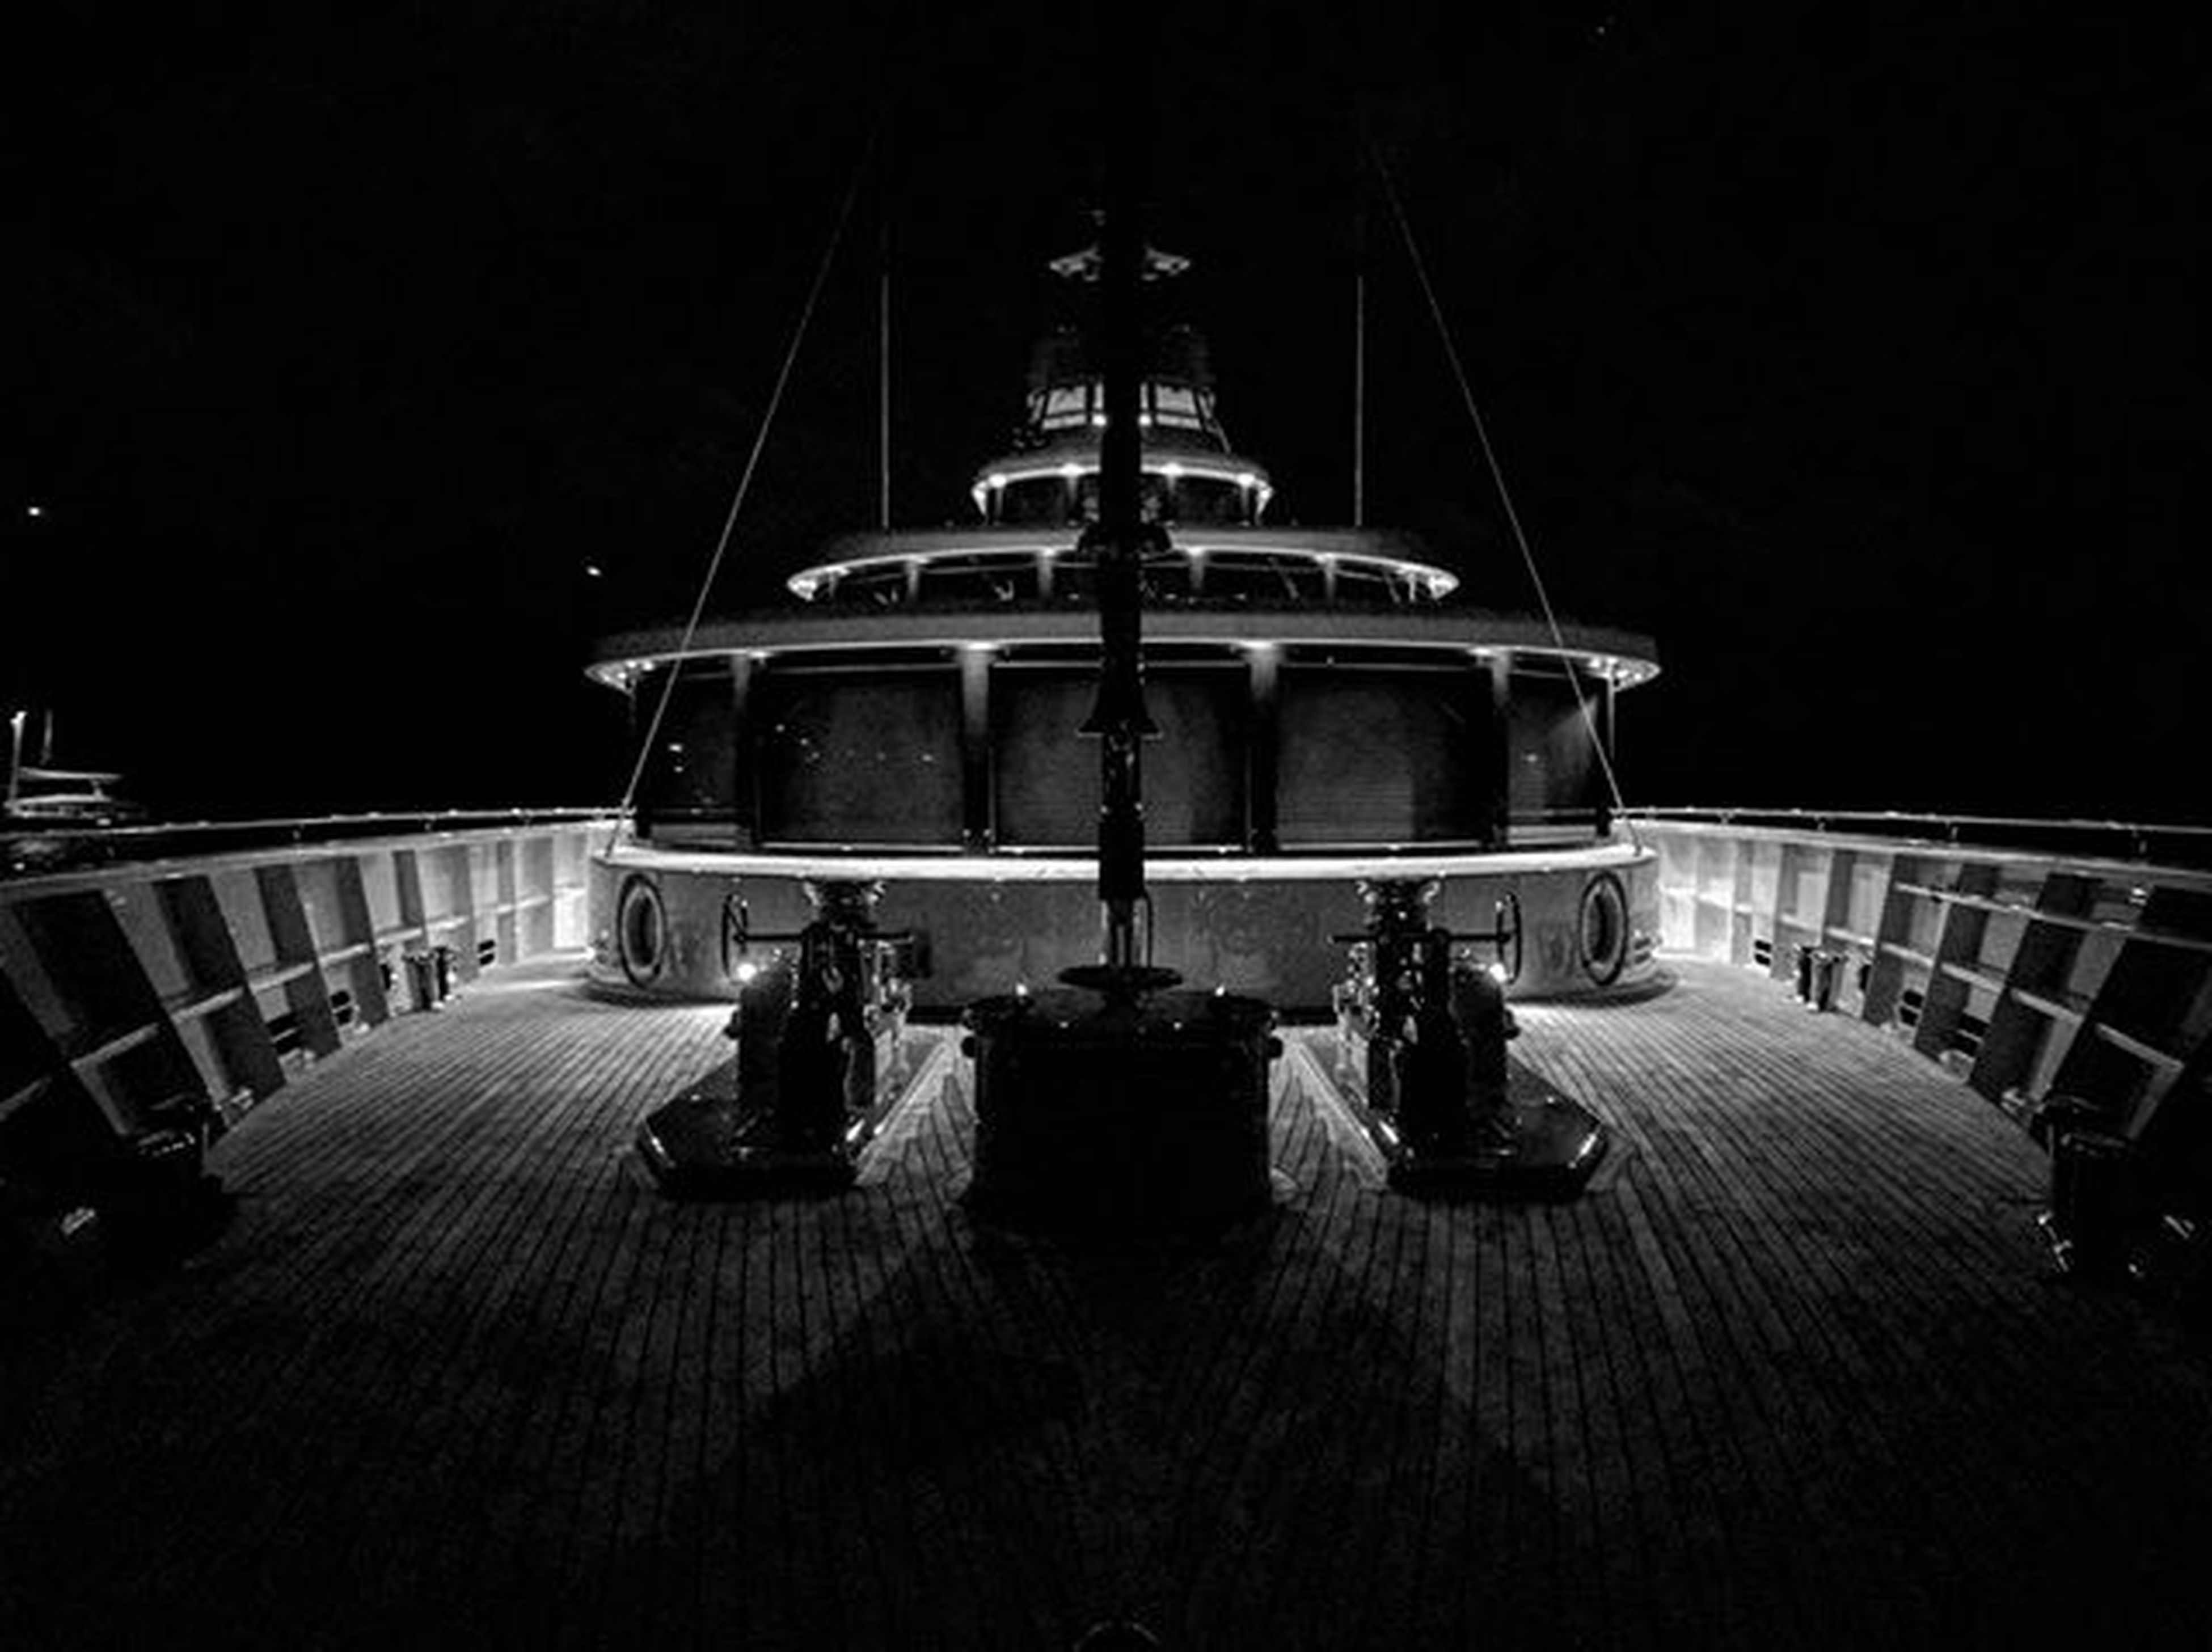 night, transportation, illuminated, men, mode of transport, clear sky, built structure, architecture, lifestyles, railing, leisure activity, person, travel, sitting, incidental people, lighting equipment, outdoors, nautical vessel